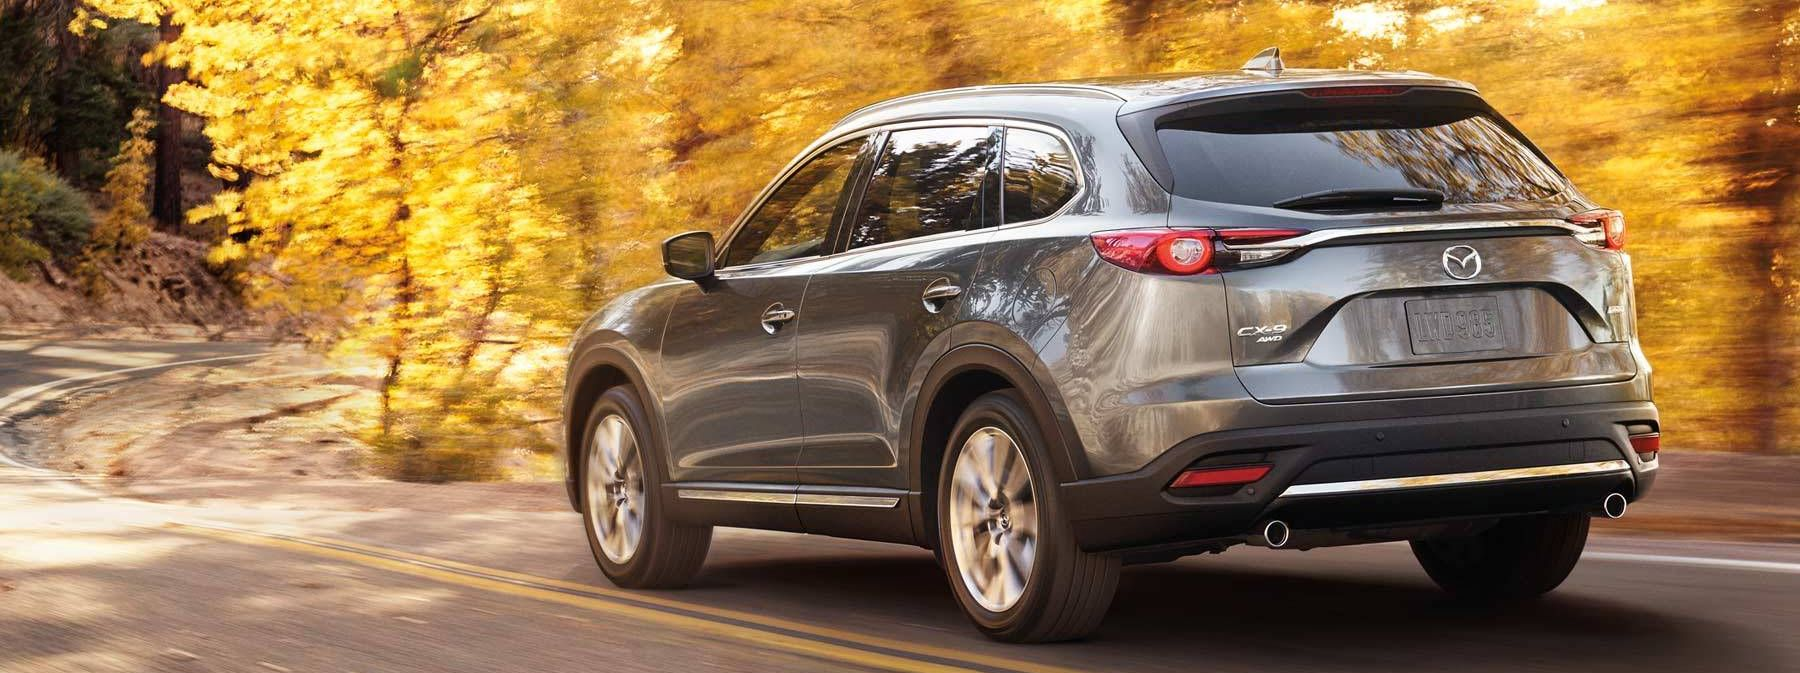 2018 Mazda CX-9 for Sale near Phoenix, AZ